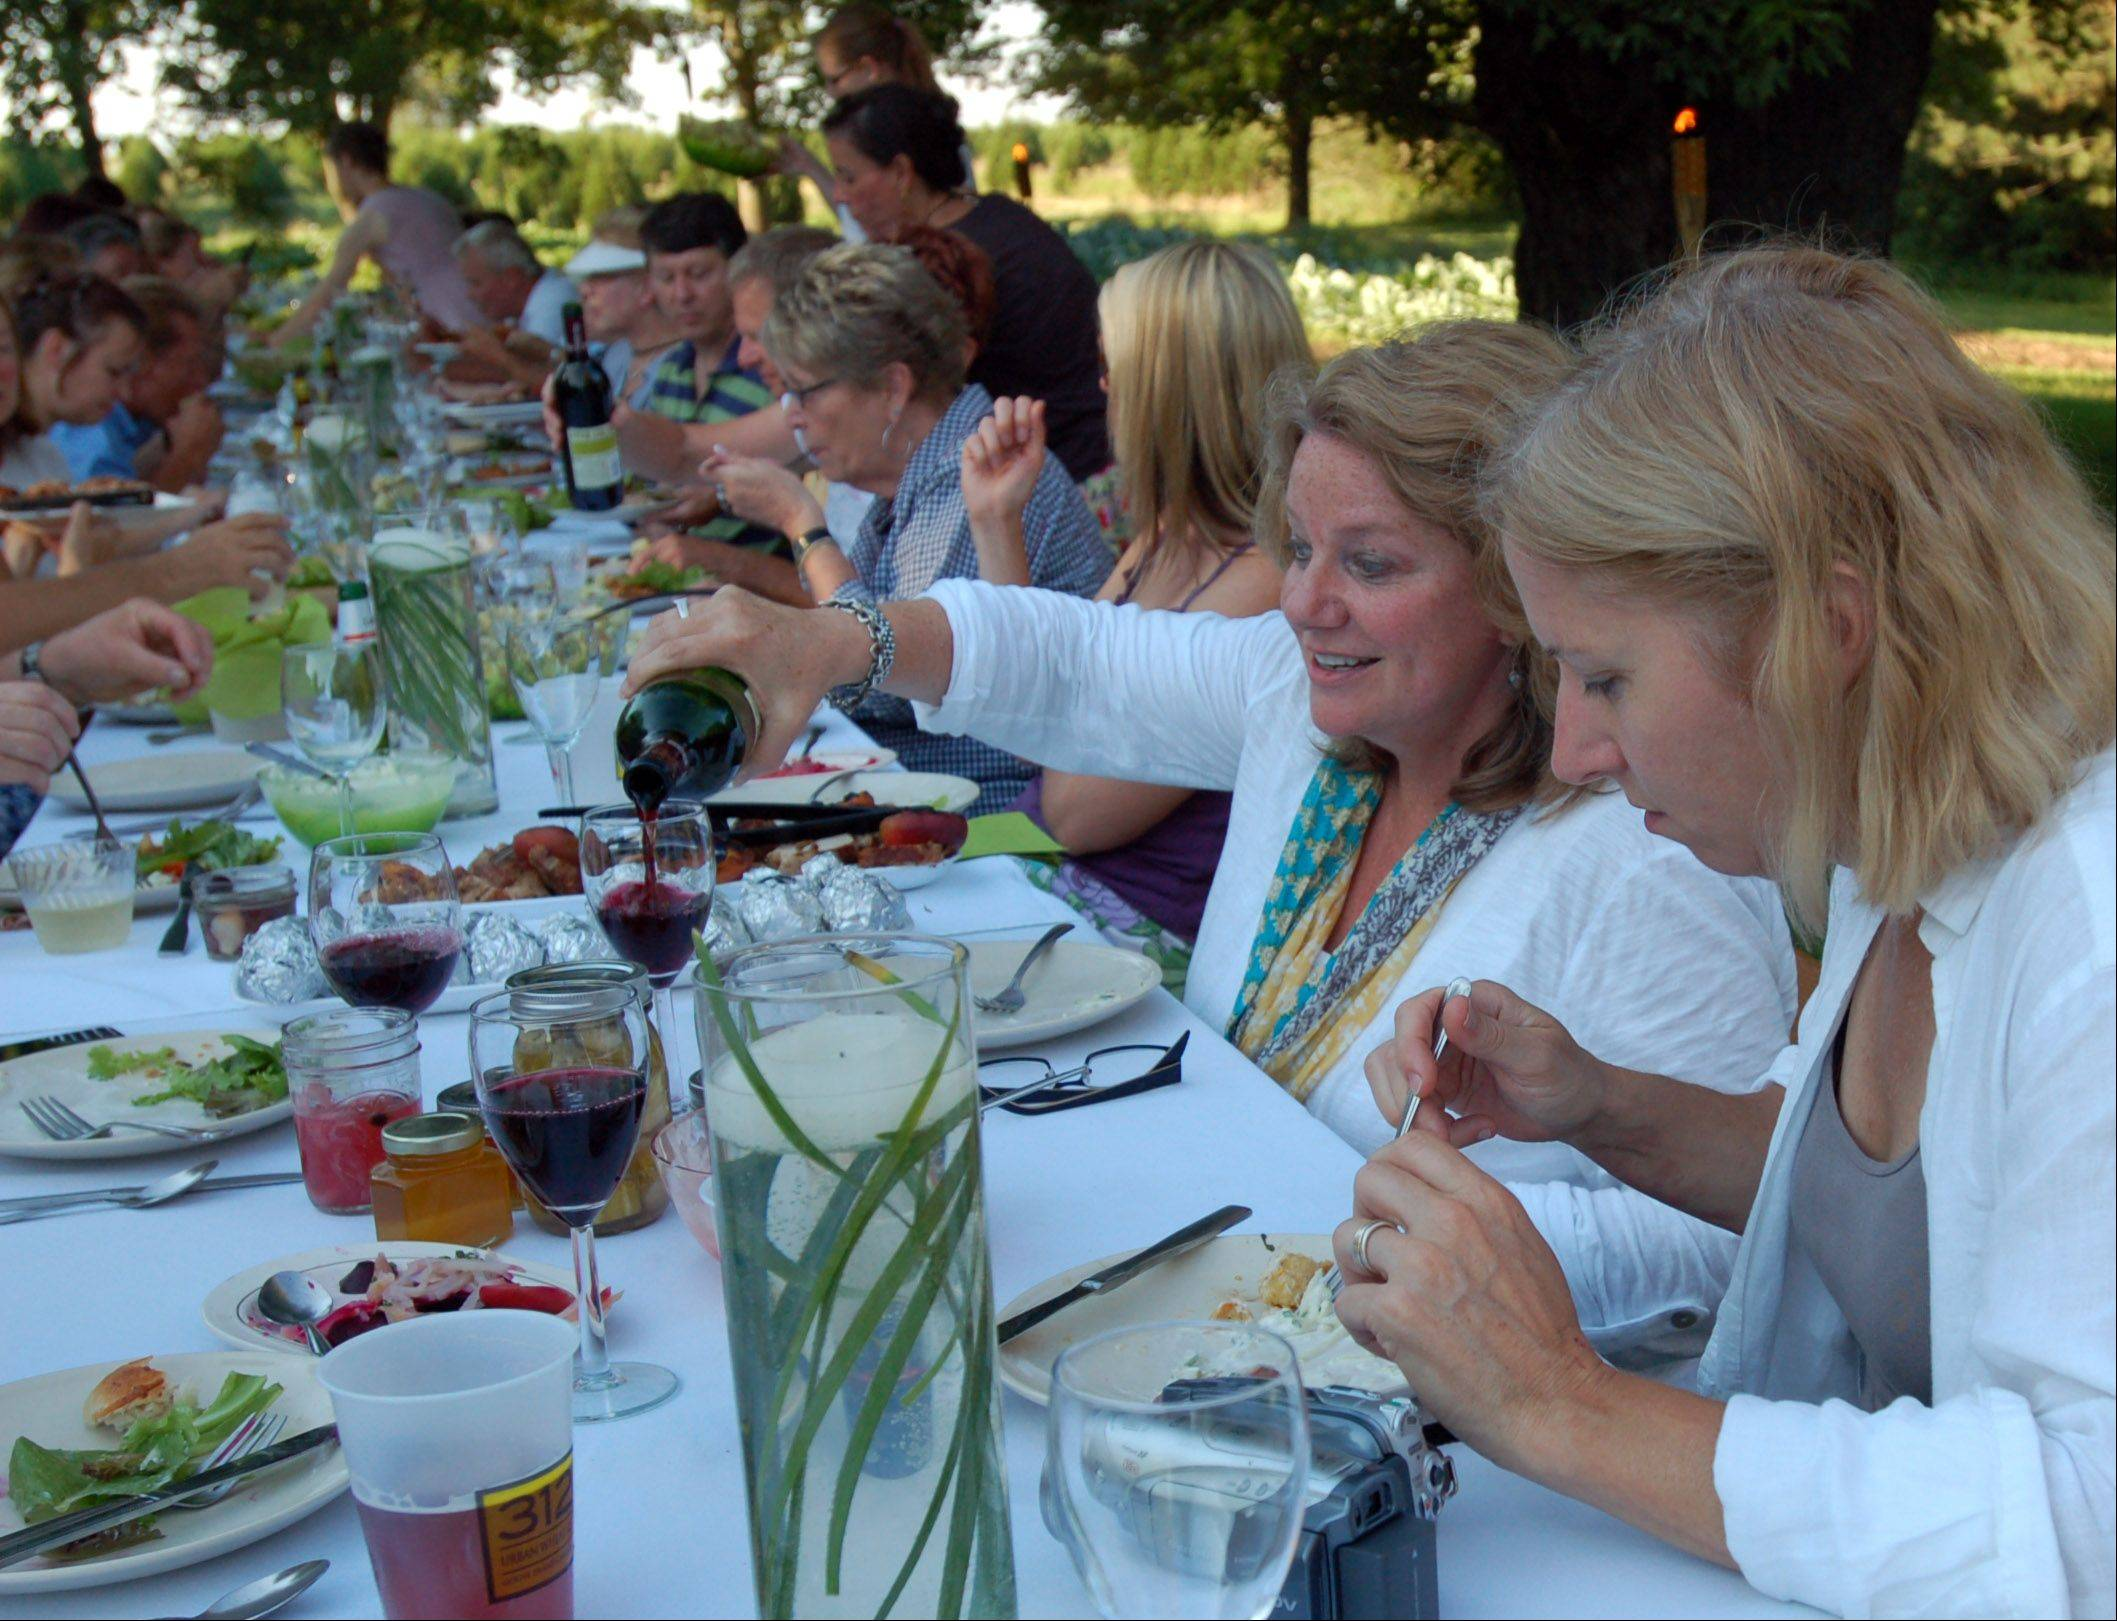 Images: Milly's Roots Farm Dinner in Huntley